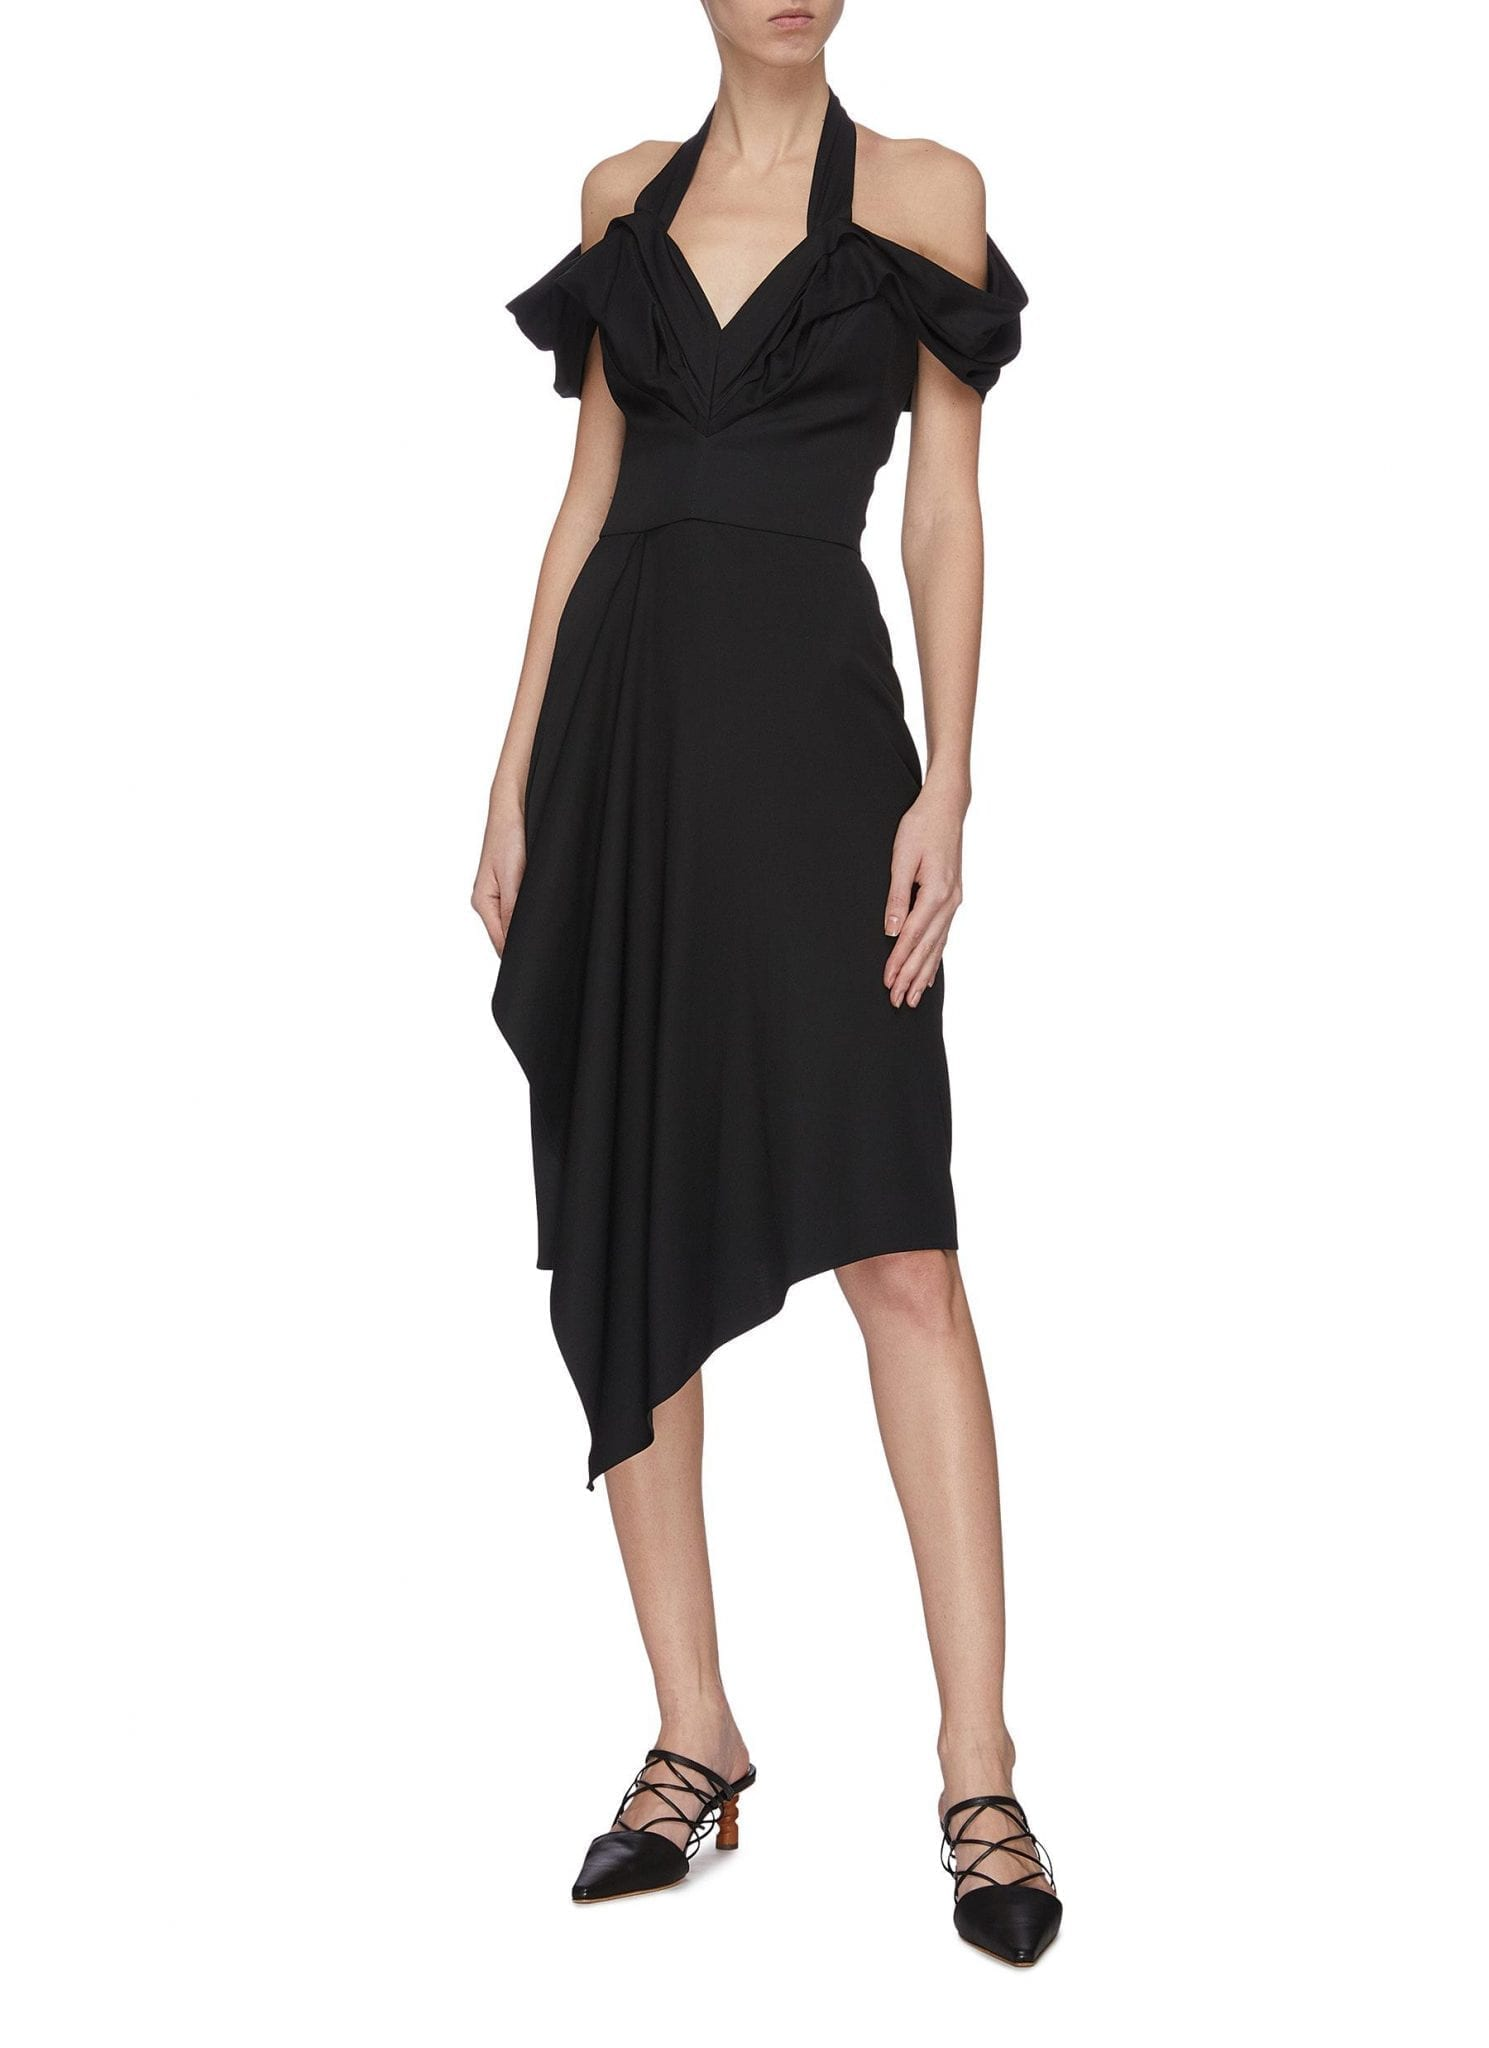 MATICEVSKI 'Chrysalis' Asymmetric V-neck Dress